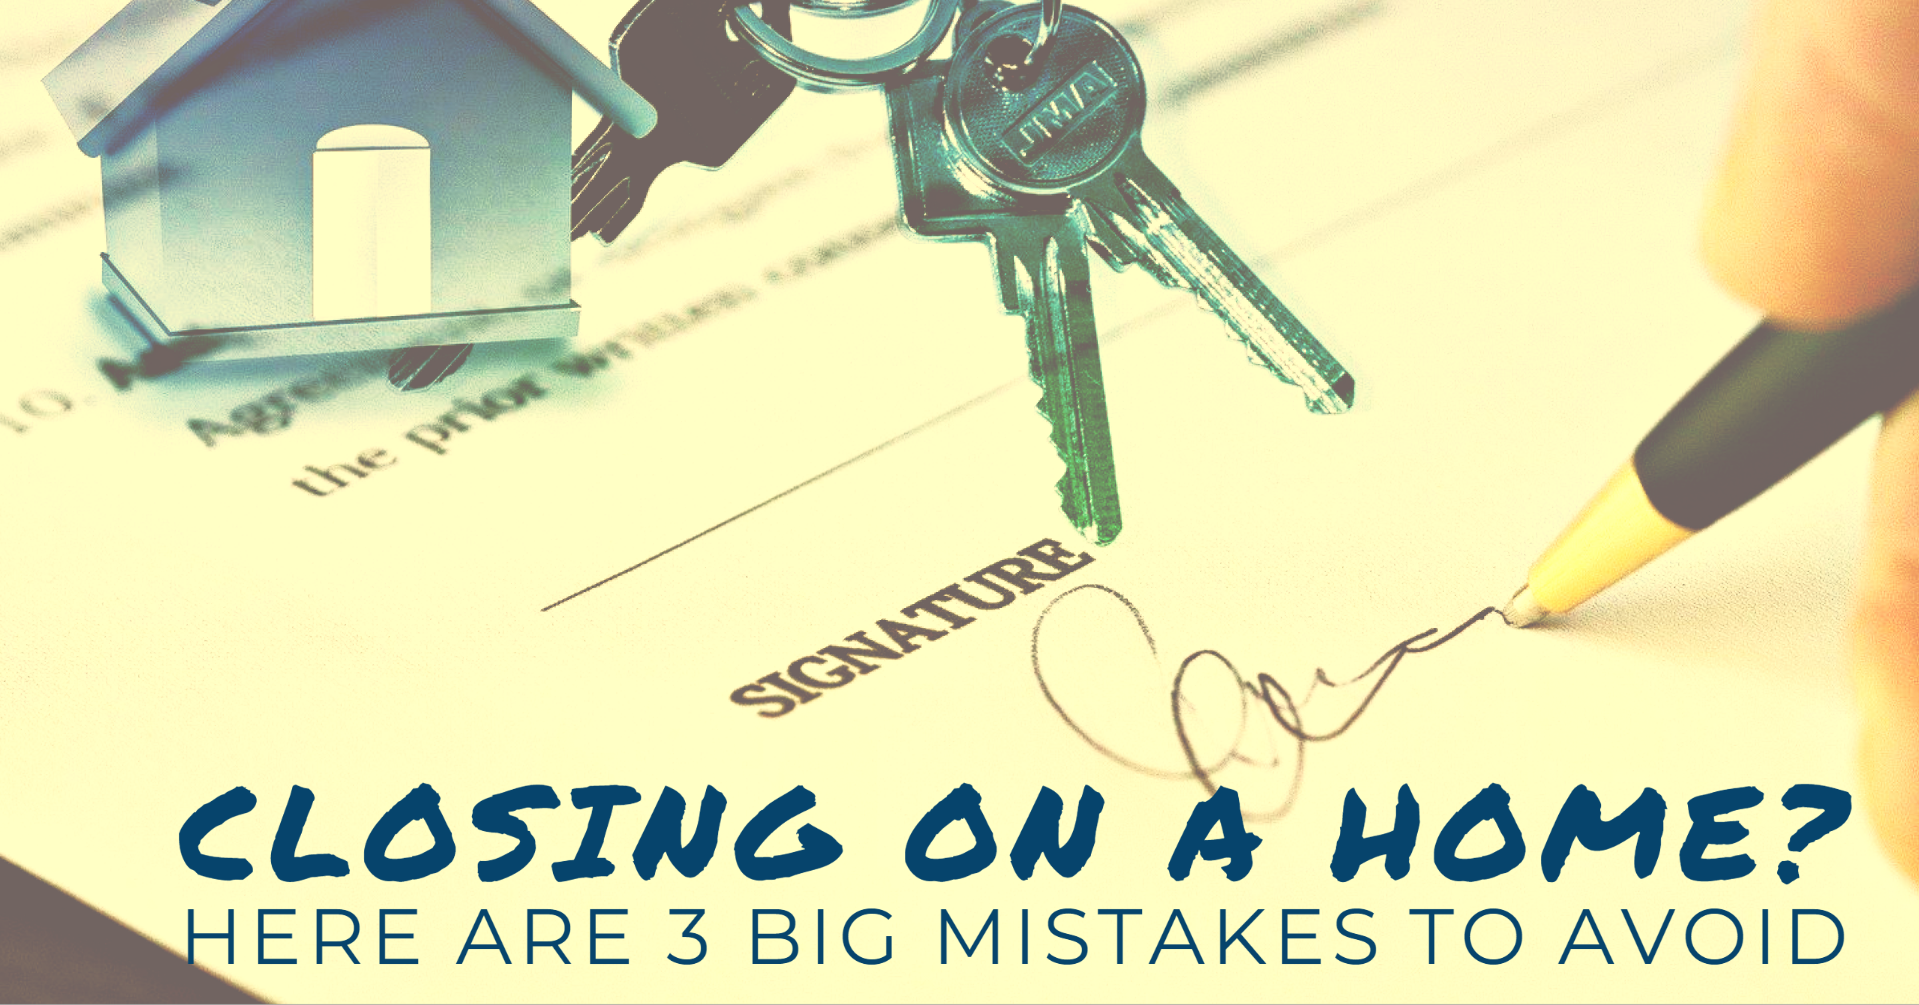 Closing on a home? Here are 3 big mistakes to avoid